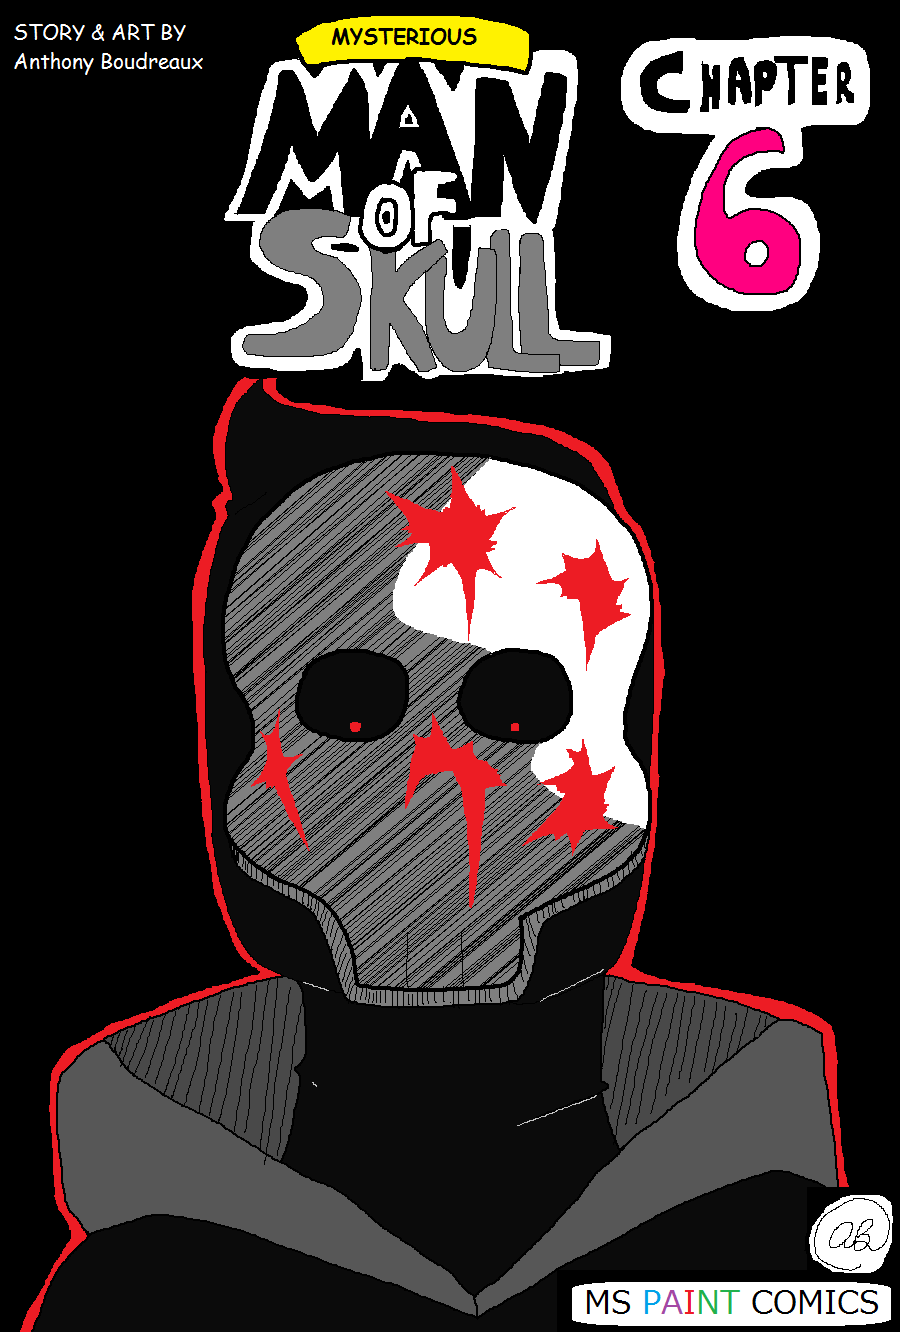 MAN OF SKULL CHAPTER 6